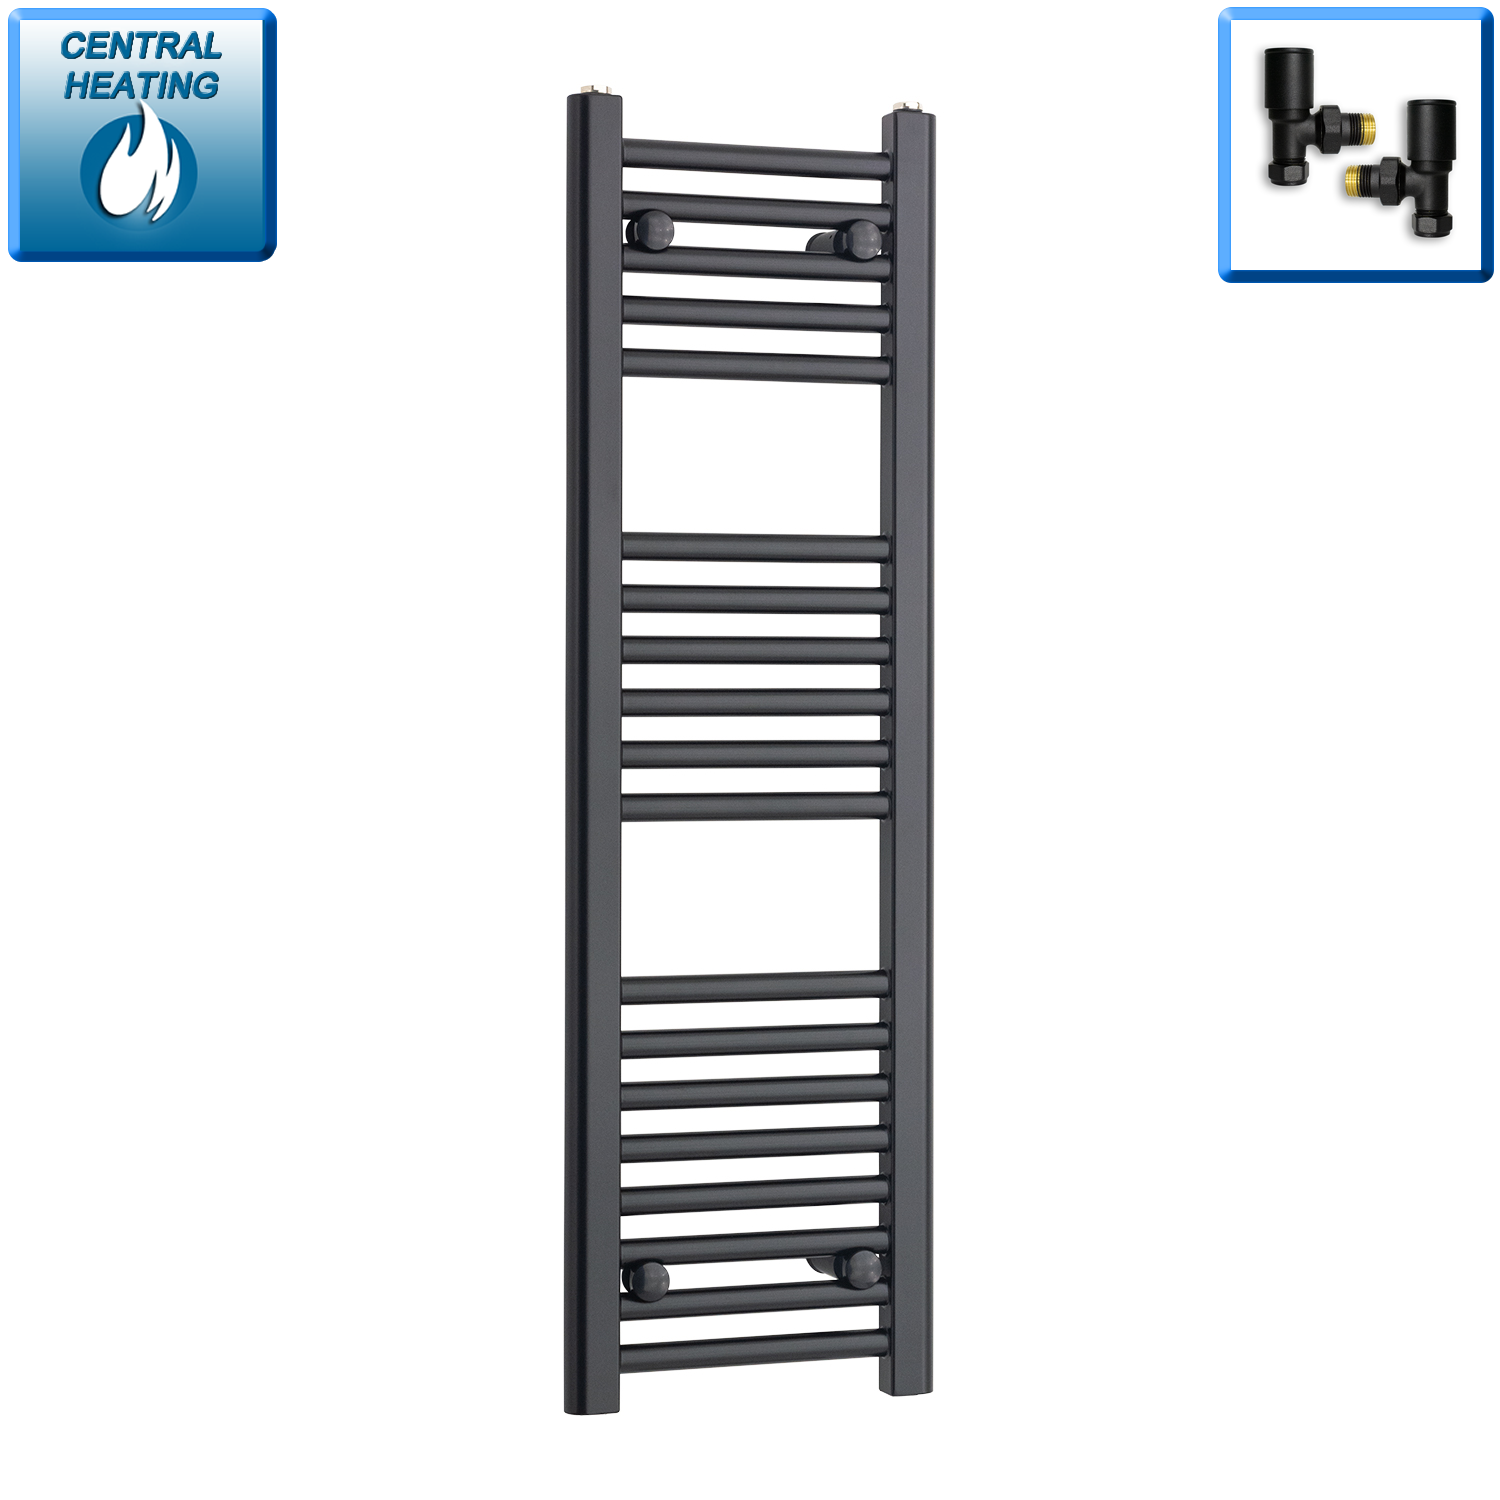 300mm Wide 1000mm High Flat Black Heated Towel Rail Radiator,With Angled Valve